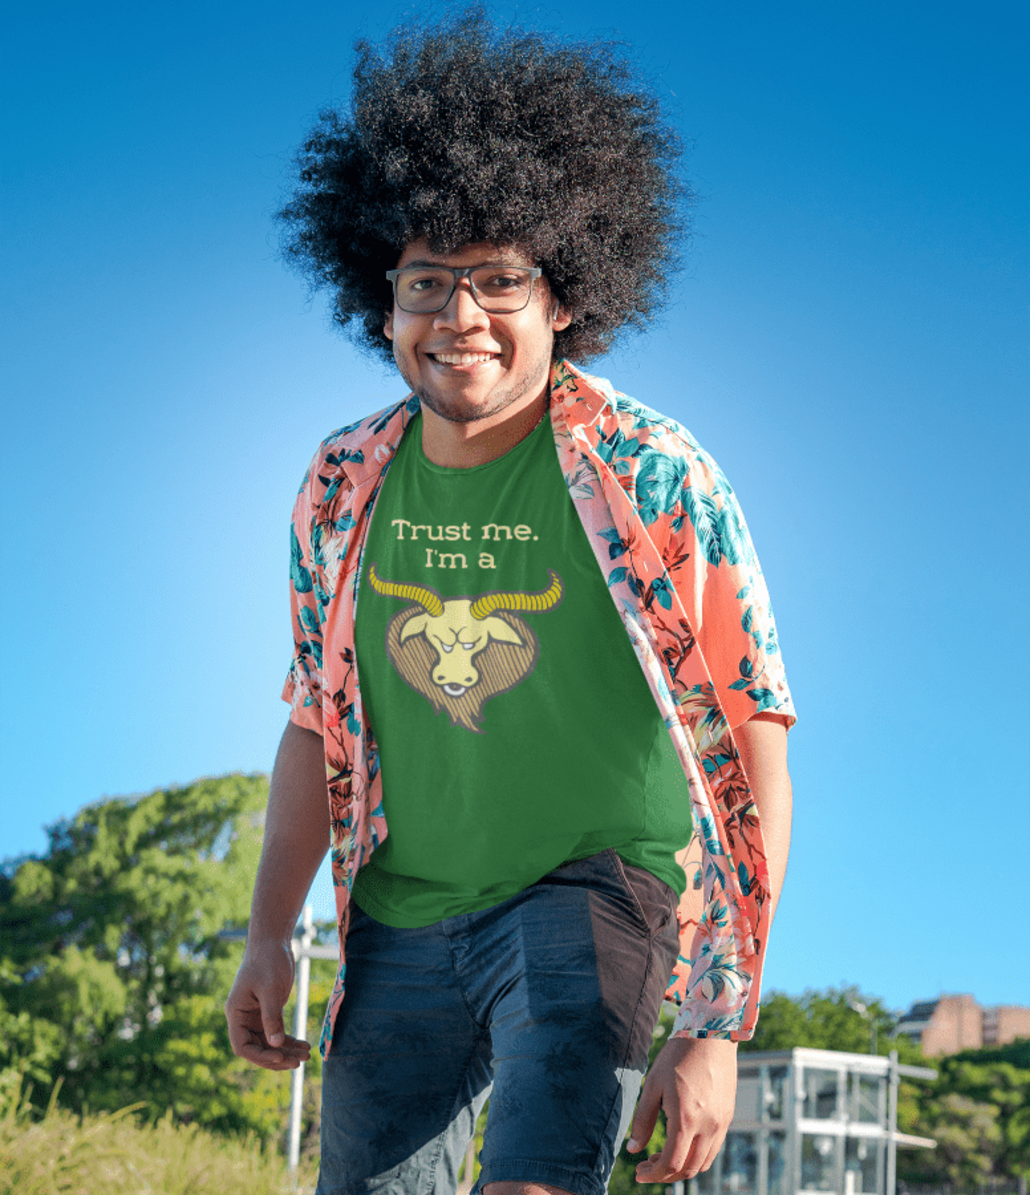 guy with afro and custom T-shirt